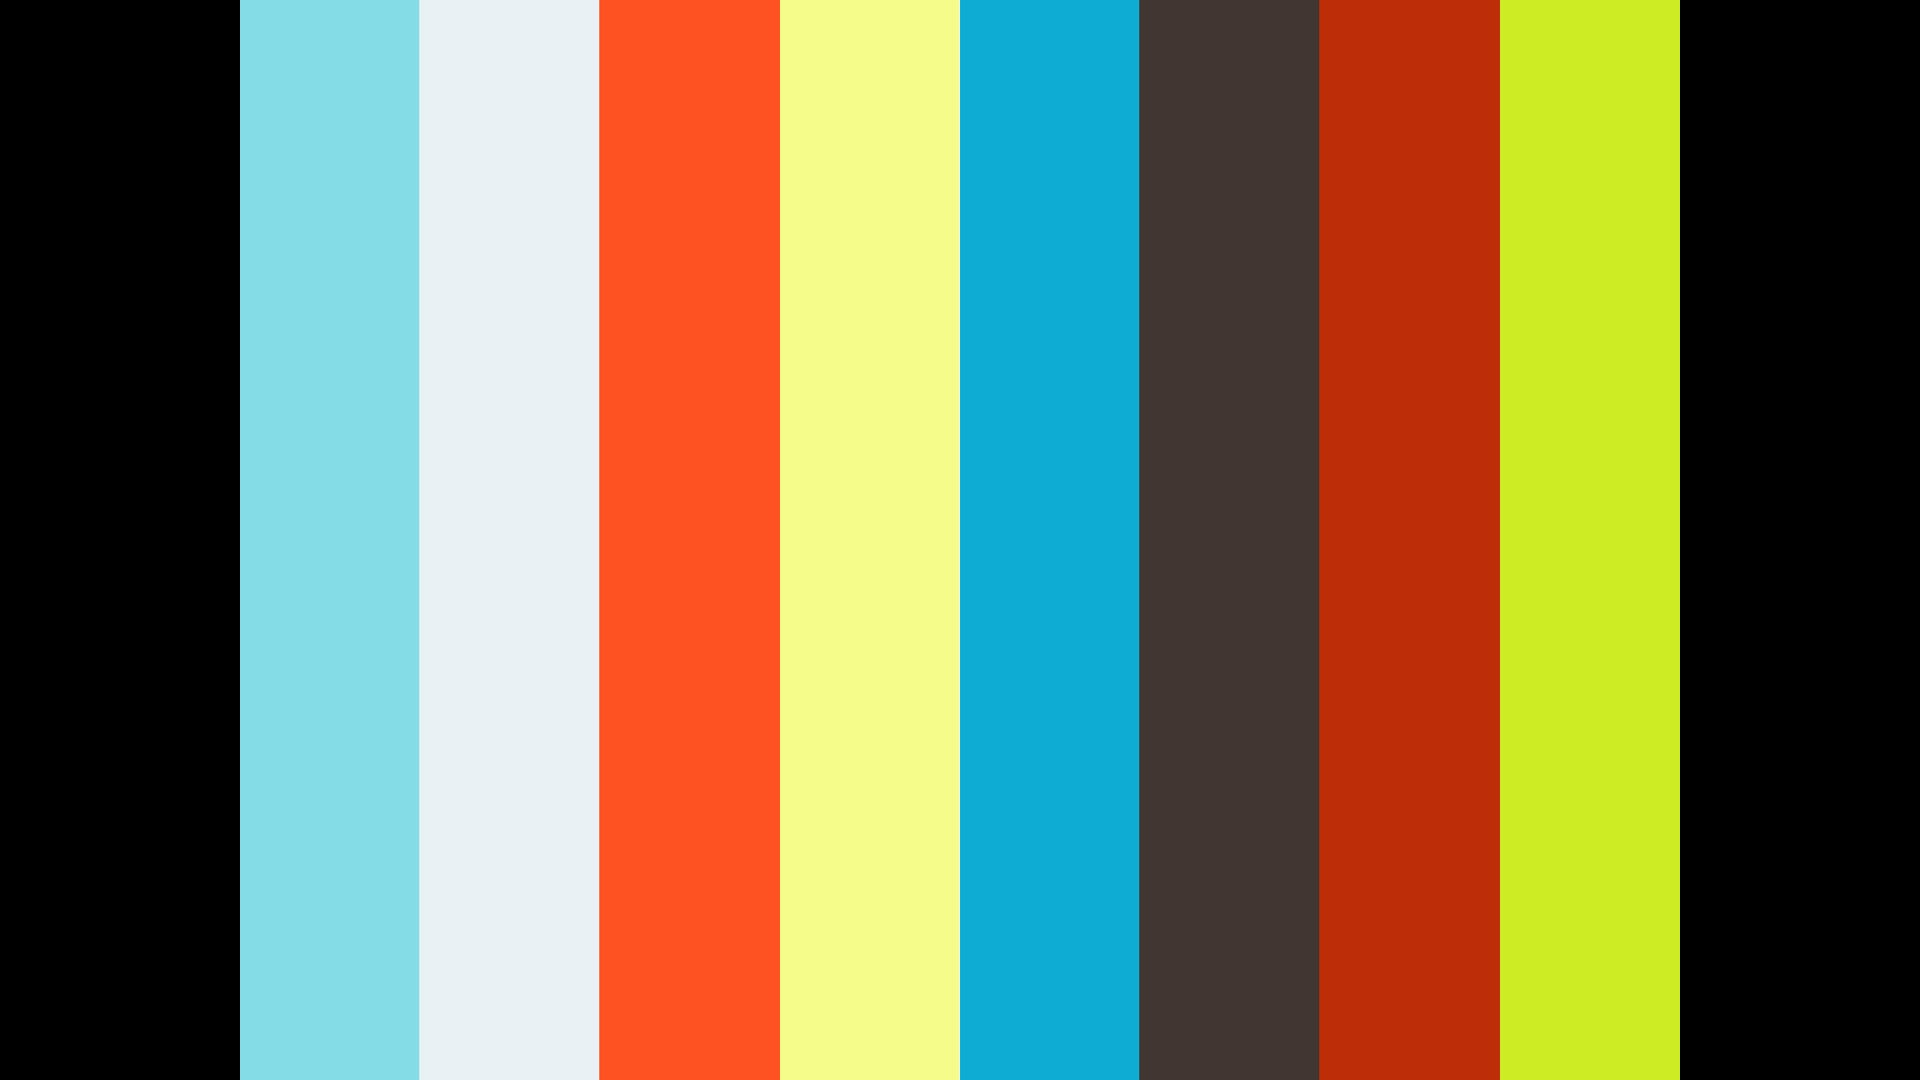 Kjeldgaard: The Importance of Religion at Trinity Orthopedics